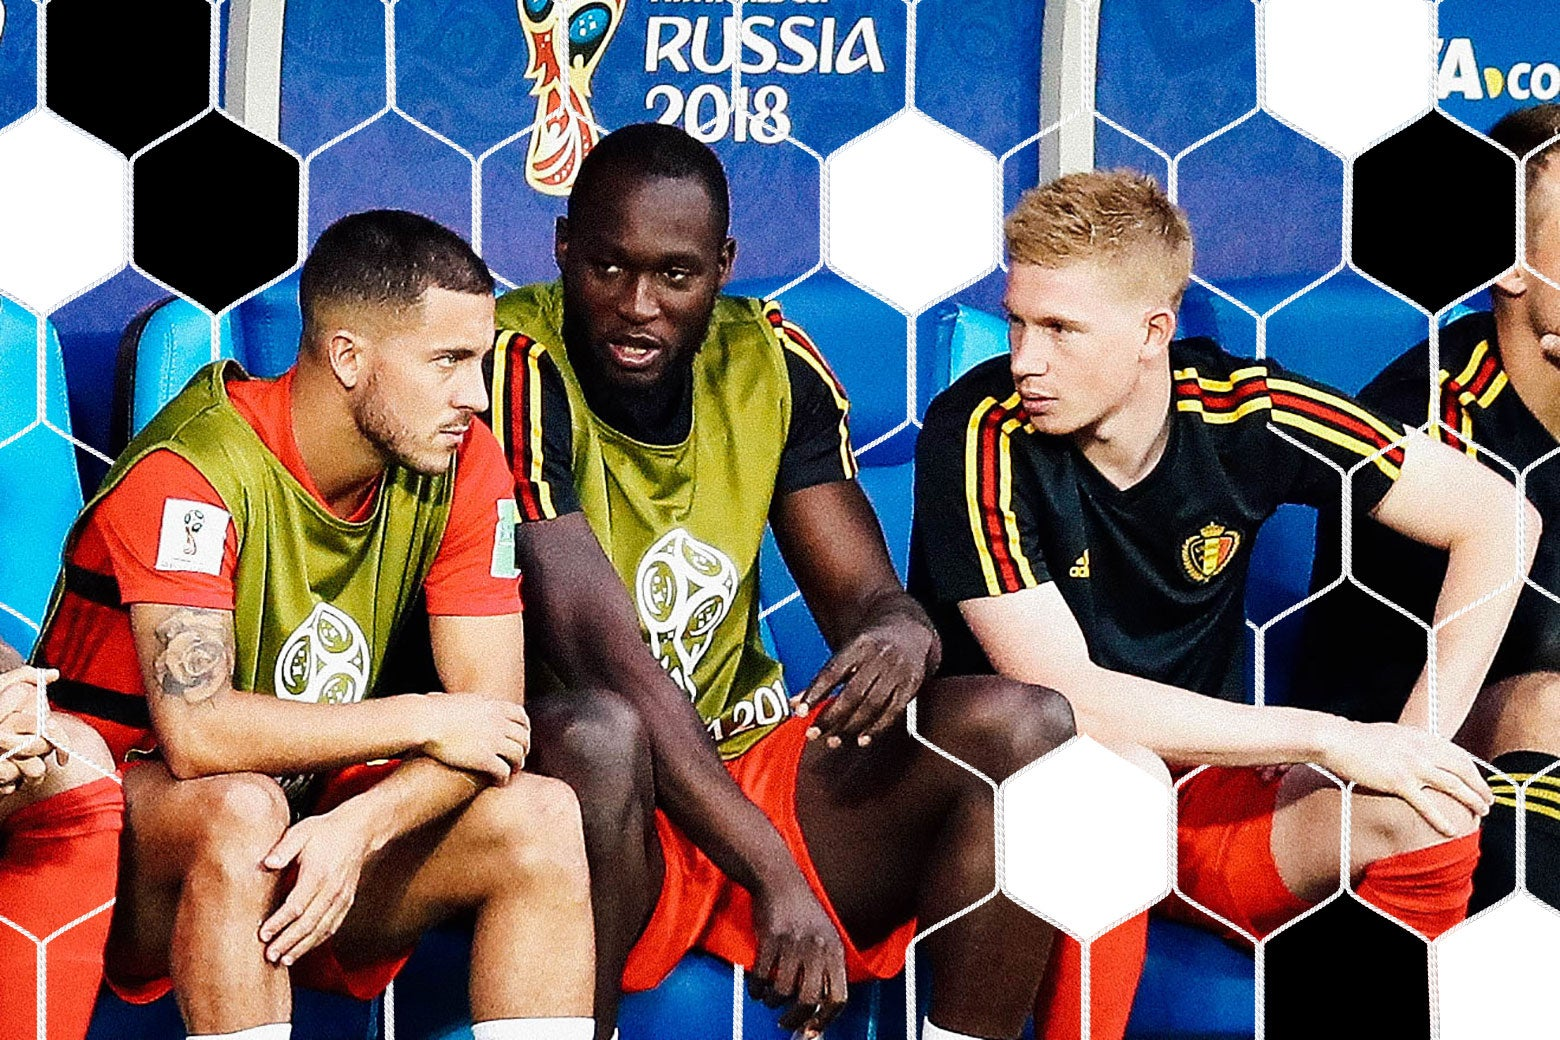 Eden Hazard of Belgium talks with teammates Romelu Lukaku and Kevin De Bruyne.